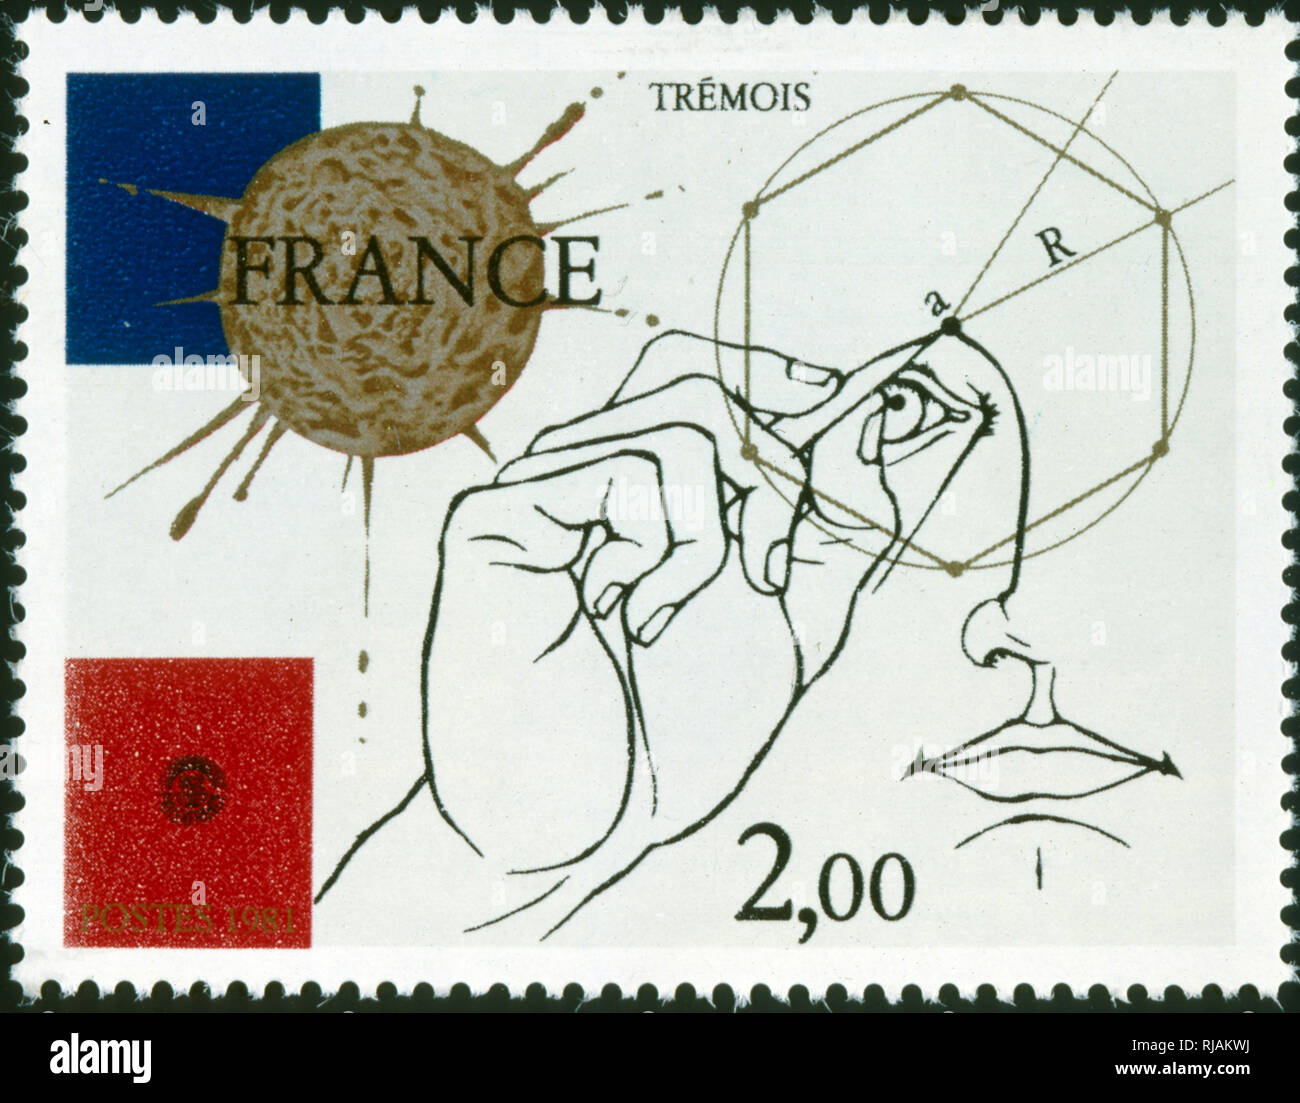 French postage stamp commemorating Pierre-Yves Tremois (born 8 January 1921 in Paris), a French visual artist and sculptor. He is known for evocative works drawing in equal proportions on surrealism and science illustration - Stock Image